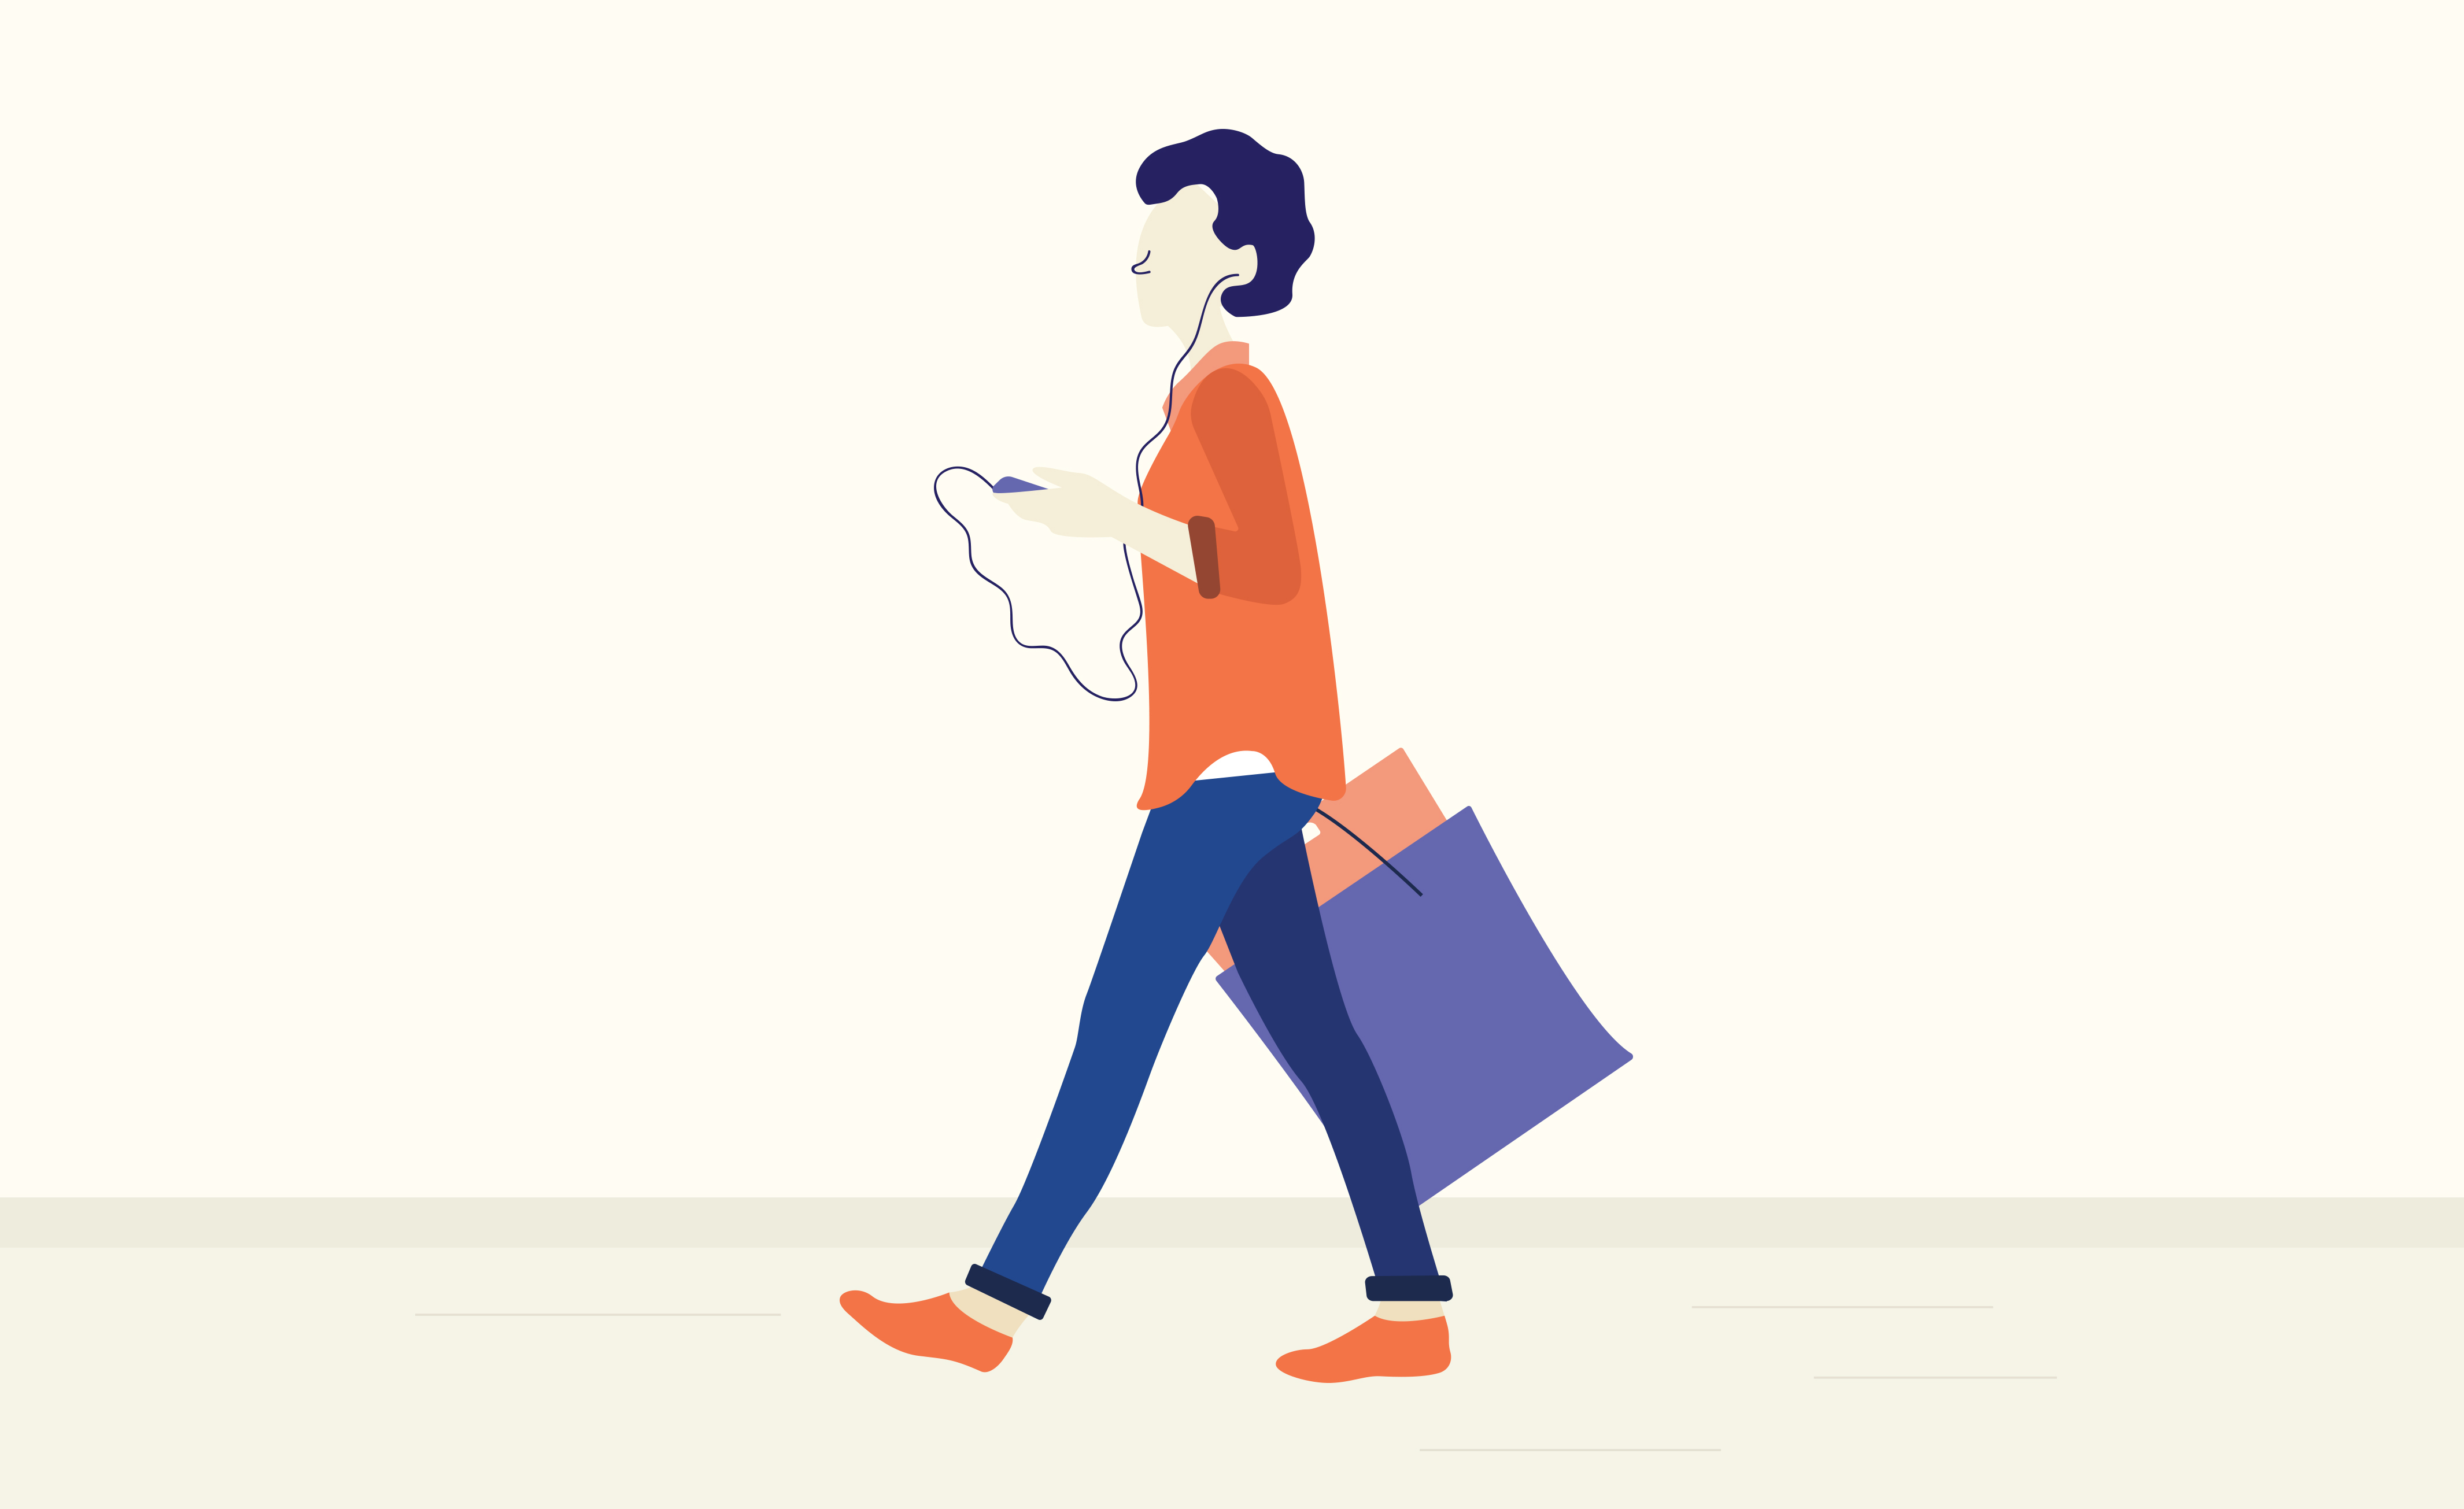 Illustration of person walking with shopping bag